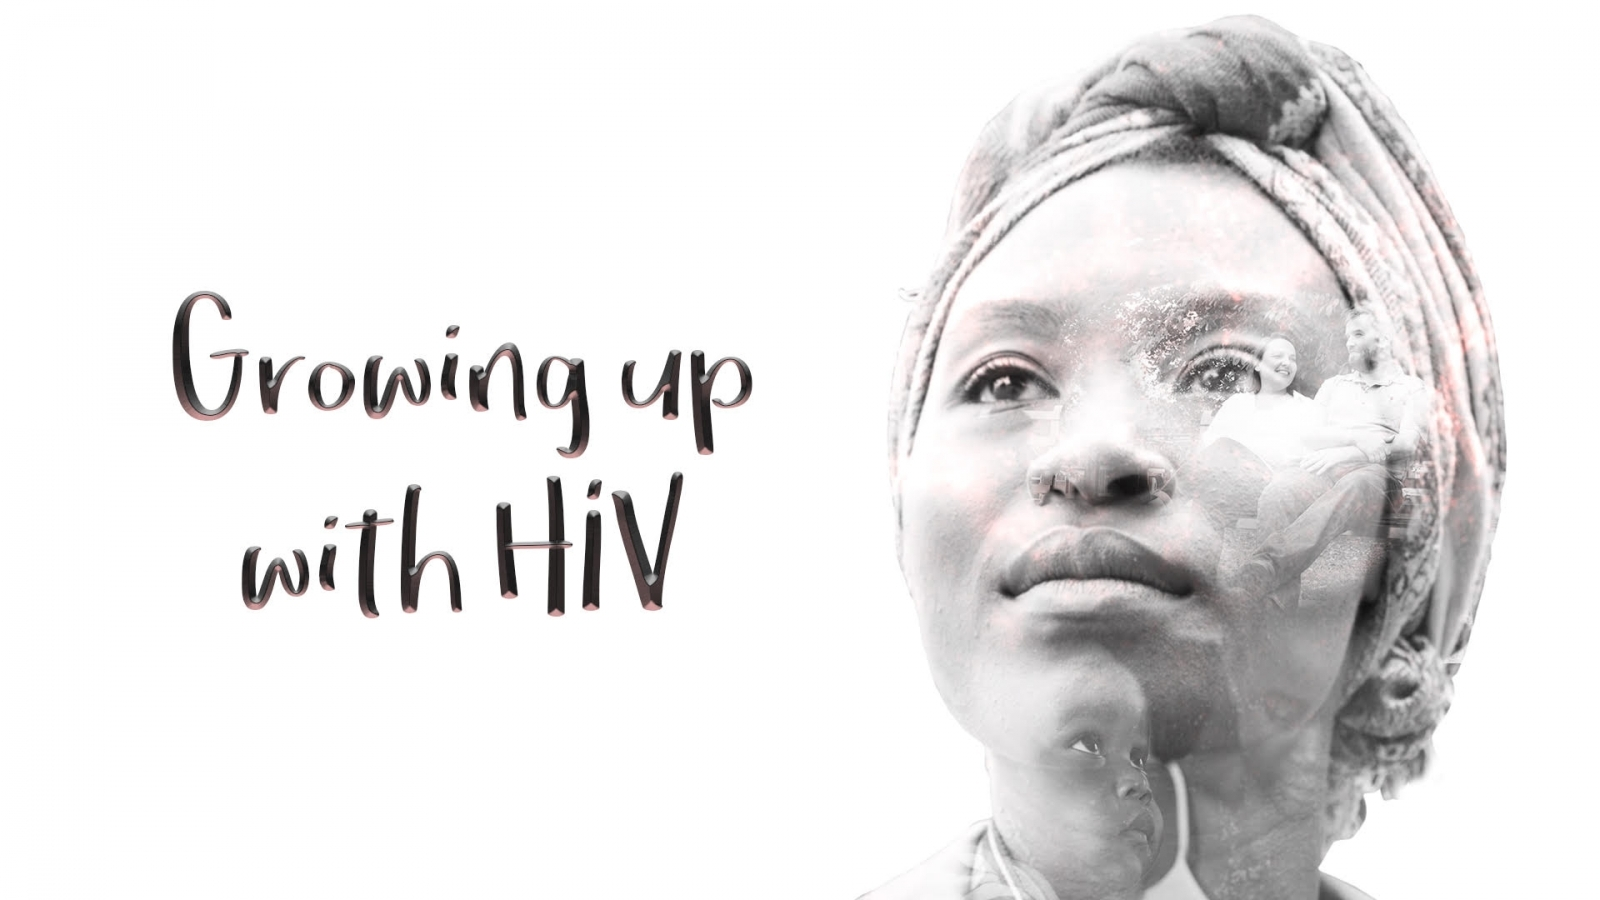 Growing up with HIV